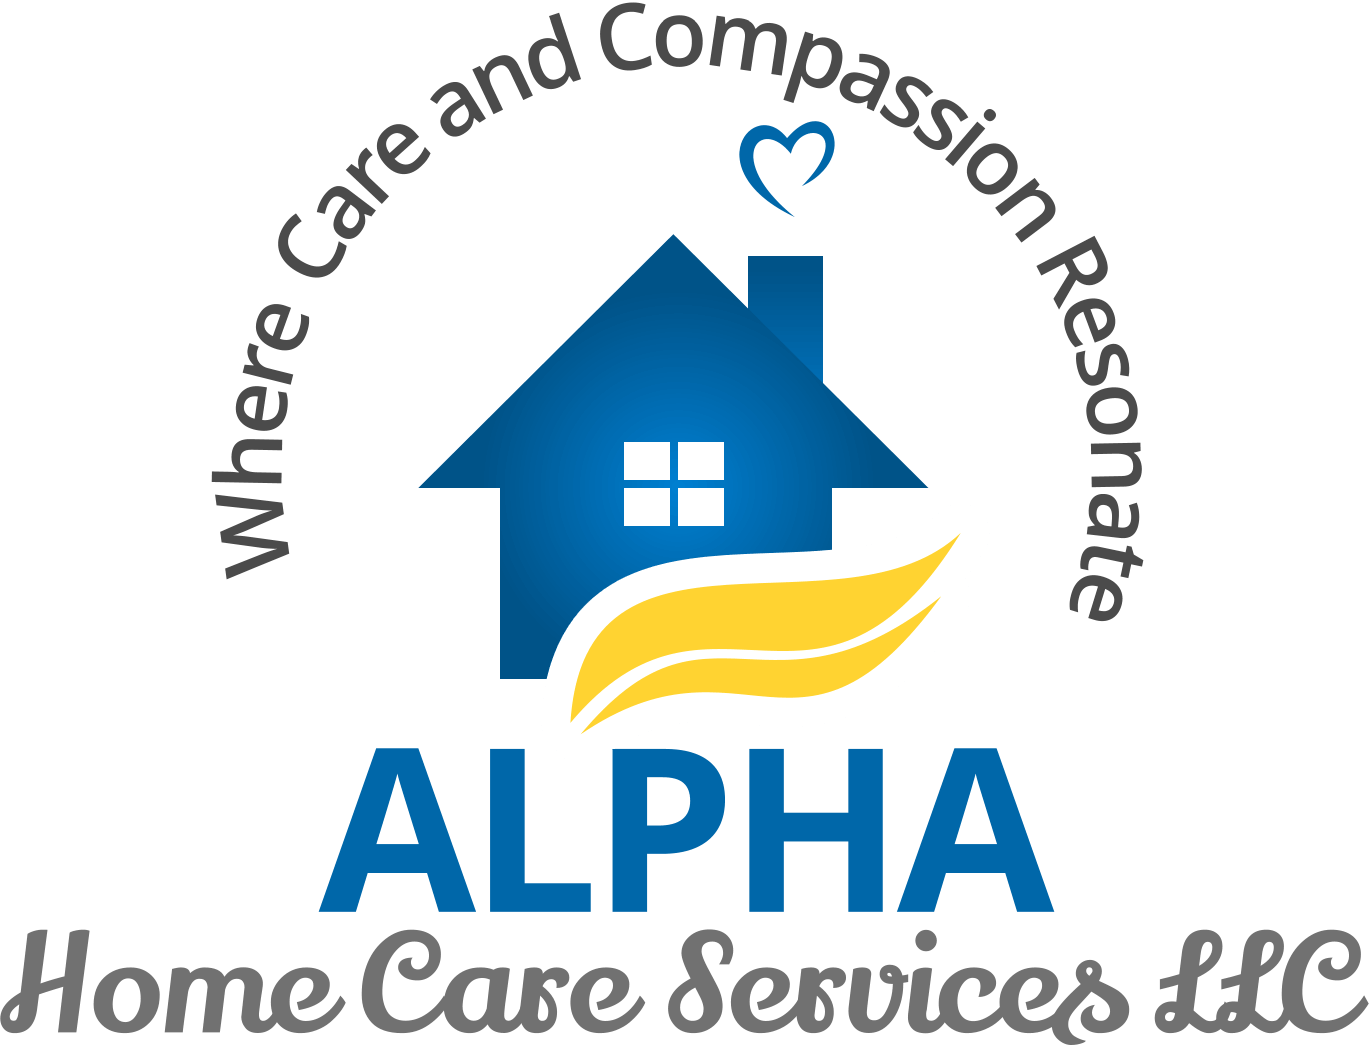 Alpha Home Care Services LLC